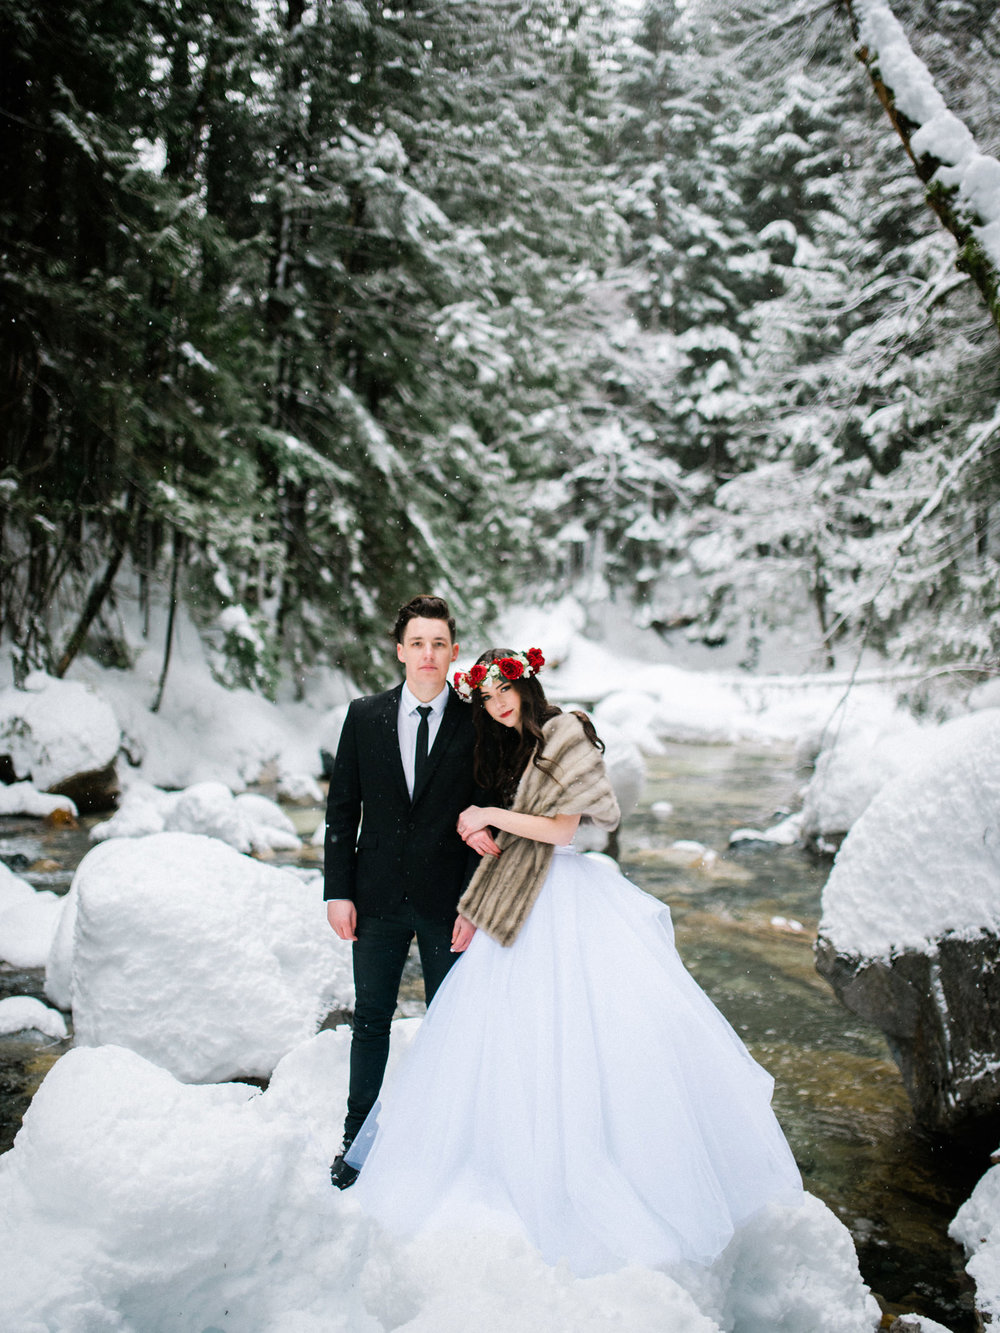 167-snowy-pnw-wedding-photo-near-franklin-falls-by-seattle-photographer-ryan-flynn.jpg